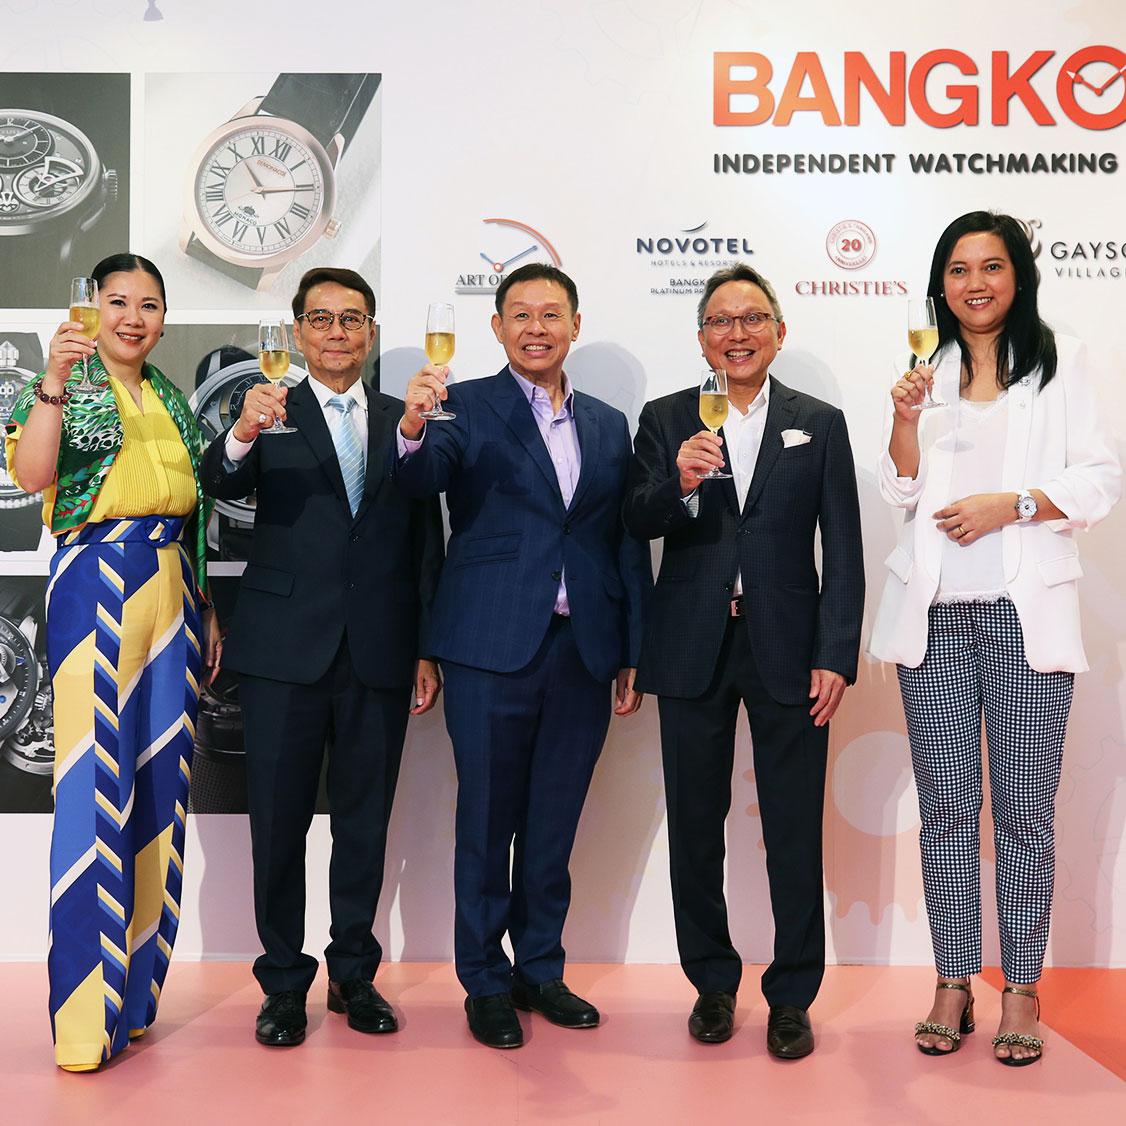 BANGKOK INDEPENDENT WATCHMAKING EXHIBITION 2019